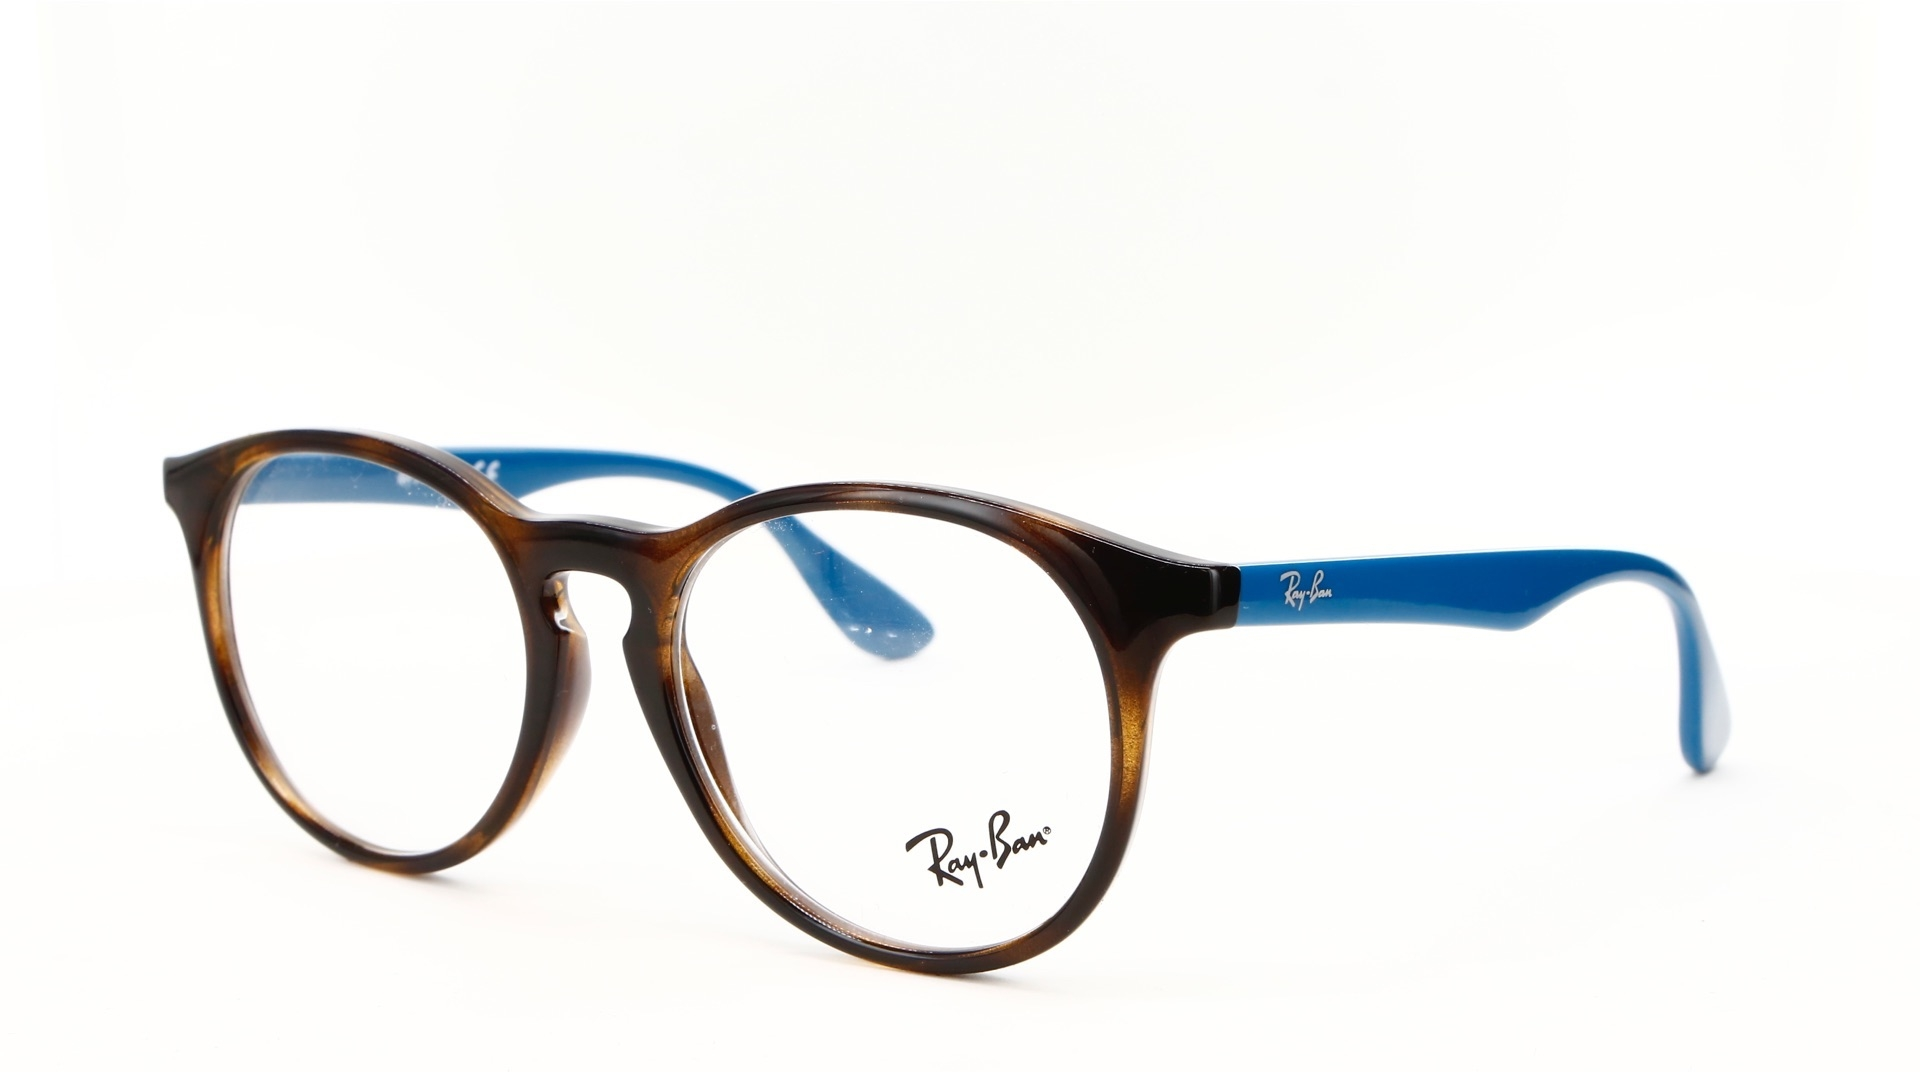 Ray-Ban - ref: 78776